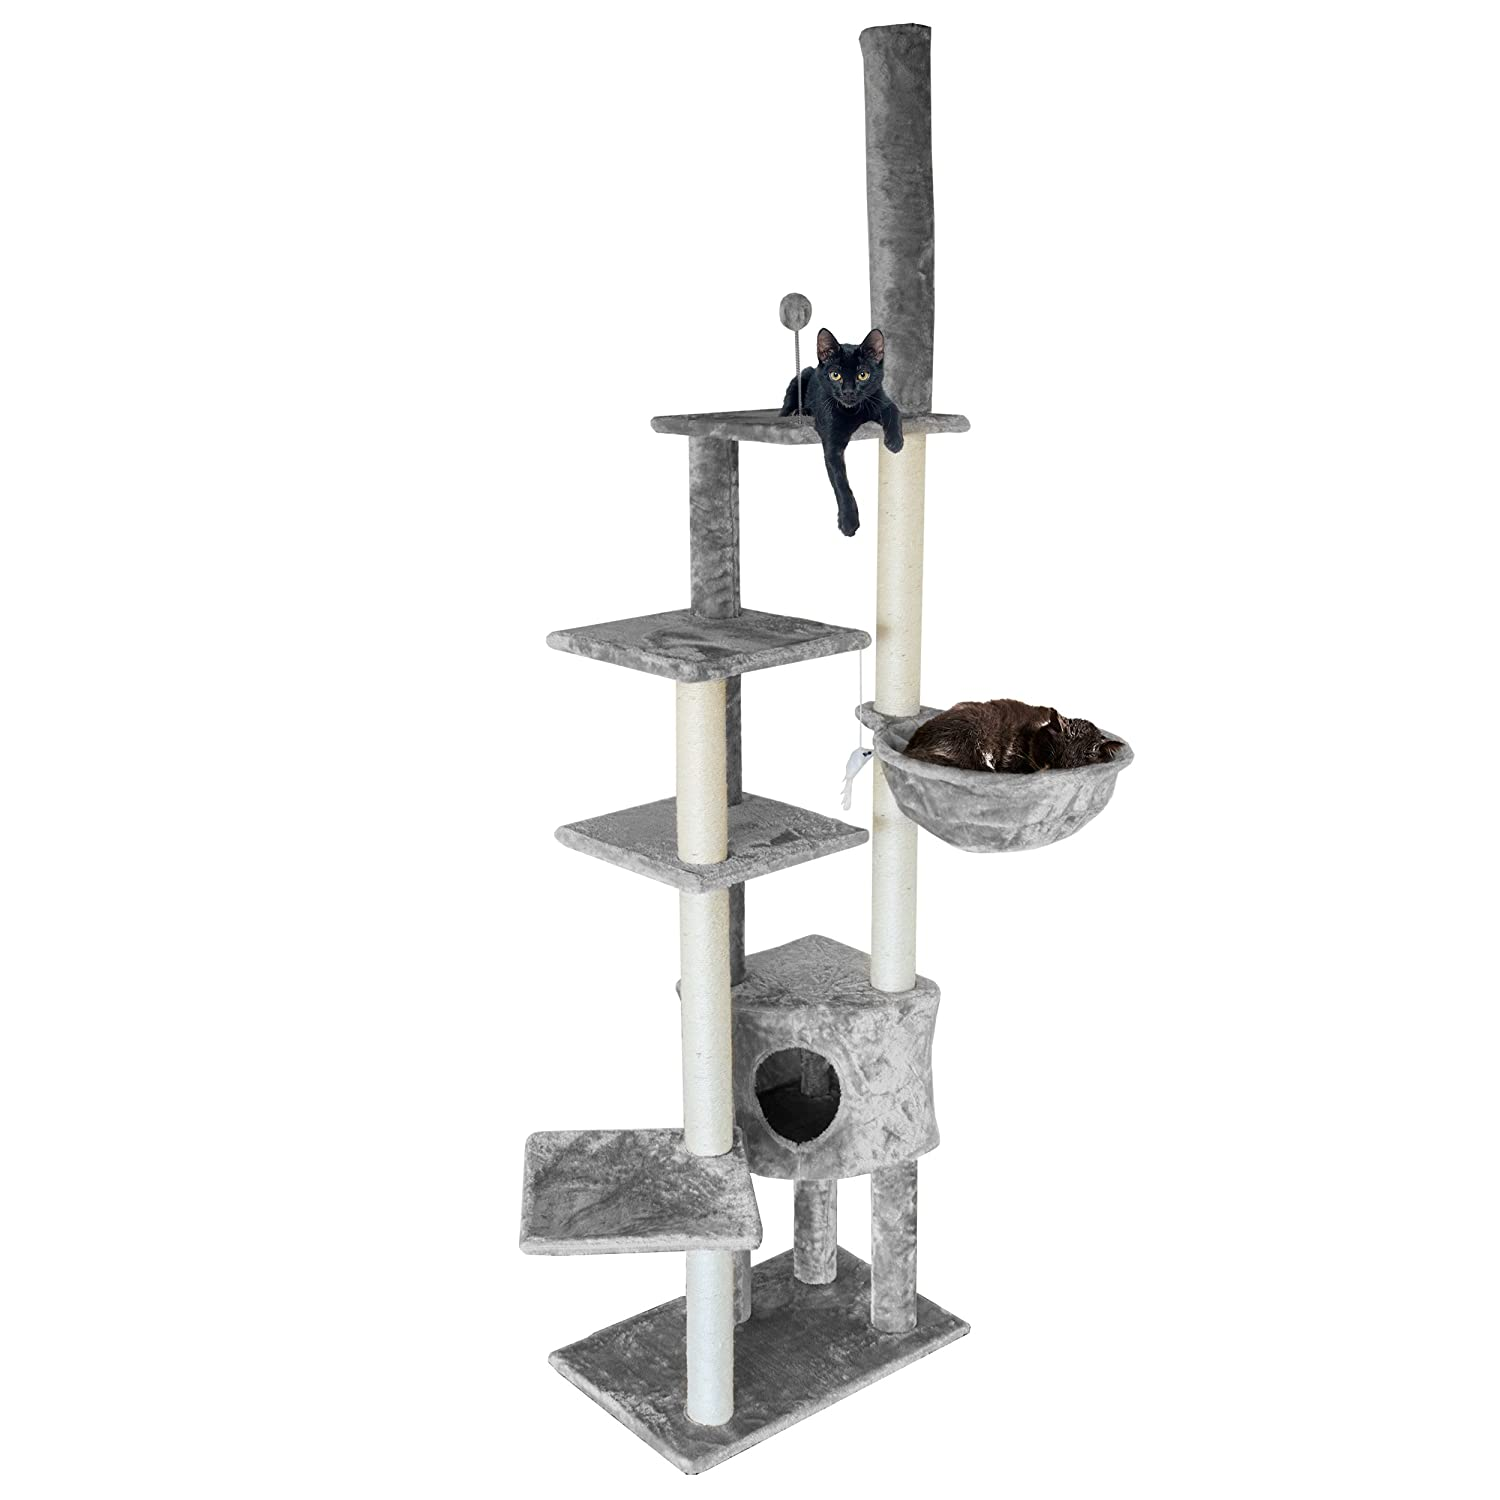 Cool Furhaven Pet Cat Tree Tiger Tough Cat Tree House Condo Perch Entertainment Playground Furniture For Cats Kittens Available In Multiple Colors Download Free Architecture Designs Scobabritishbridgeorg